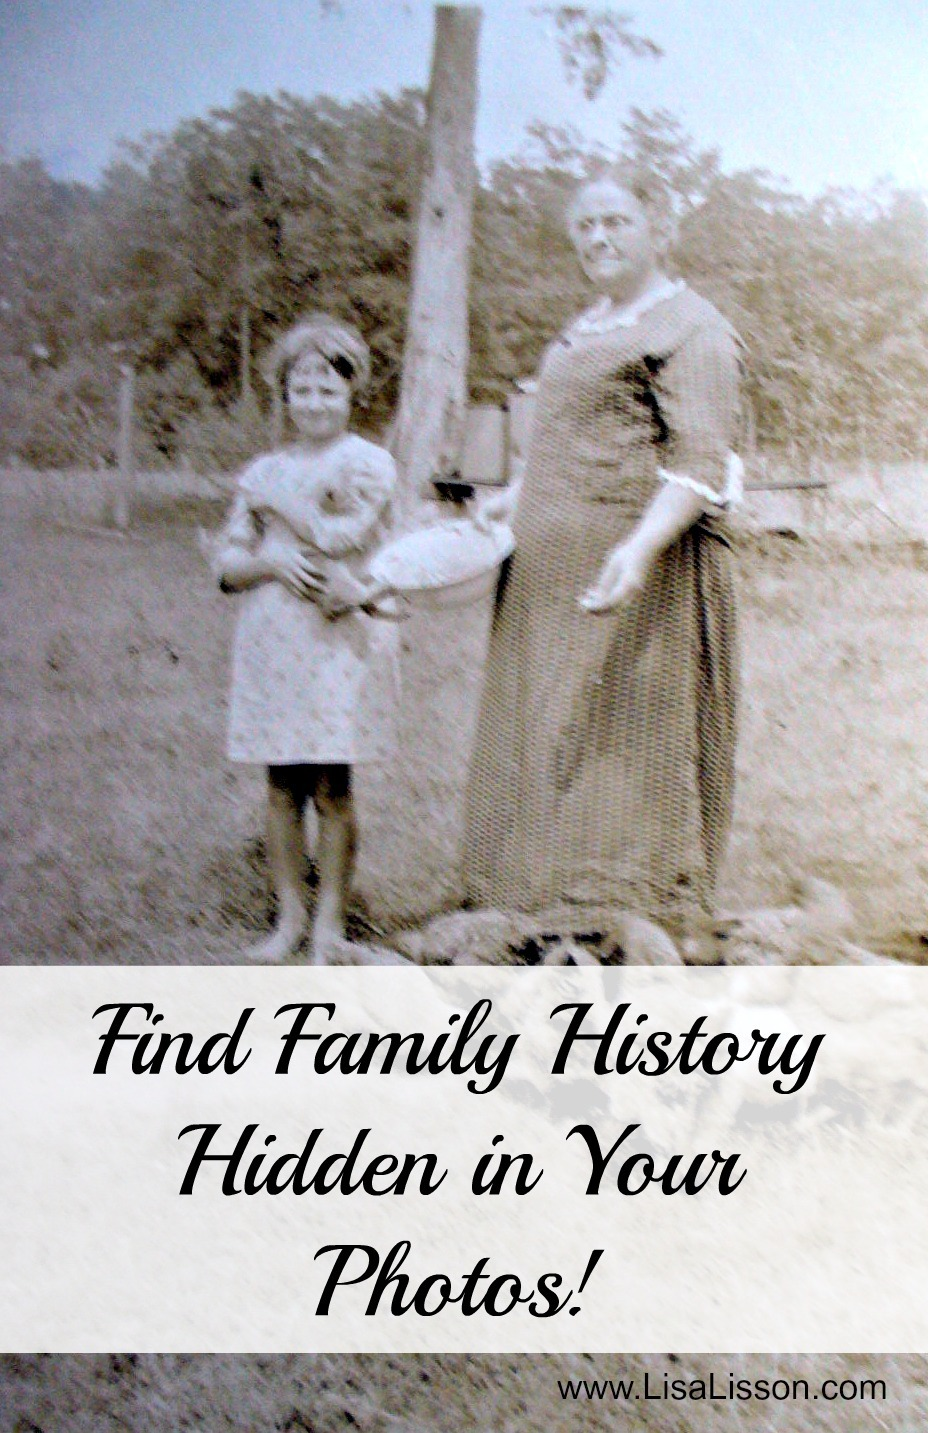 Find Family History Hidden in Your Photos